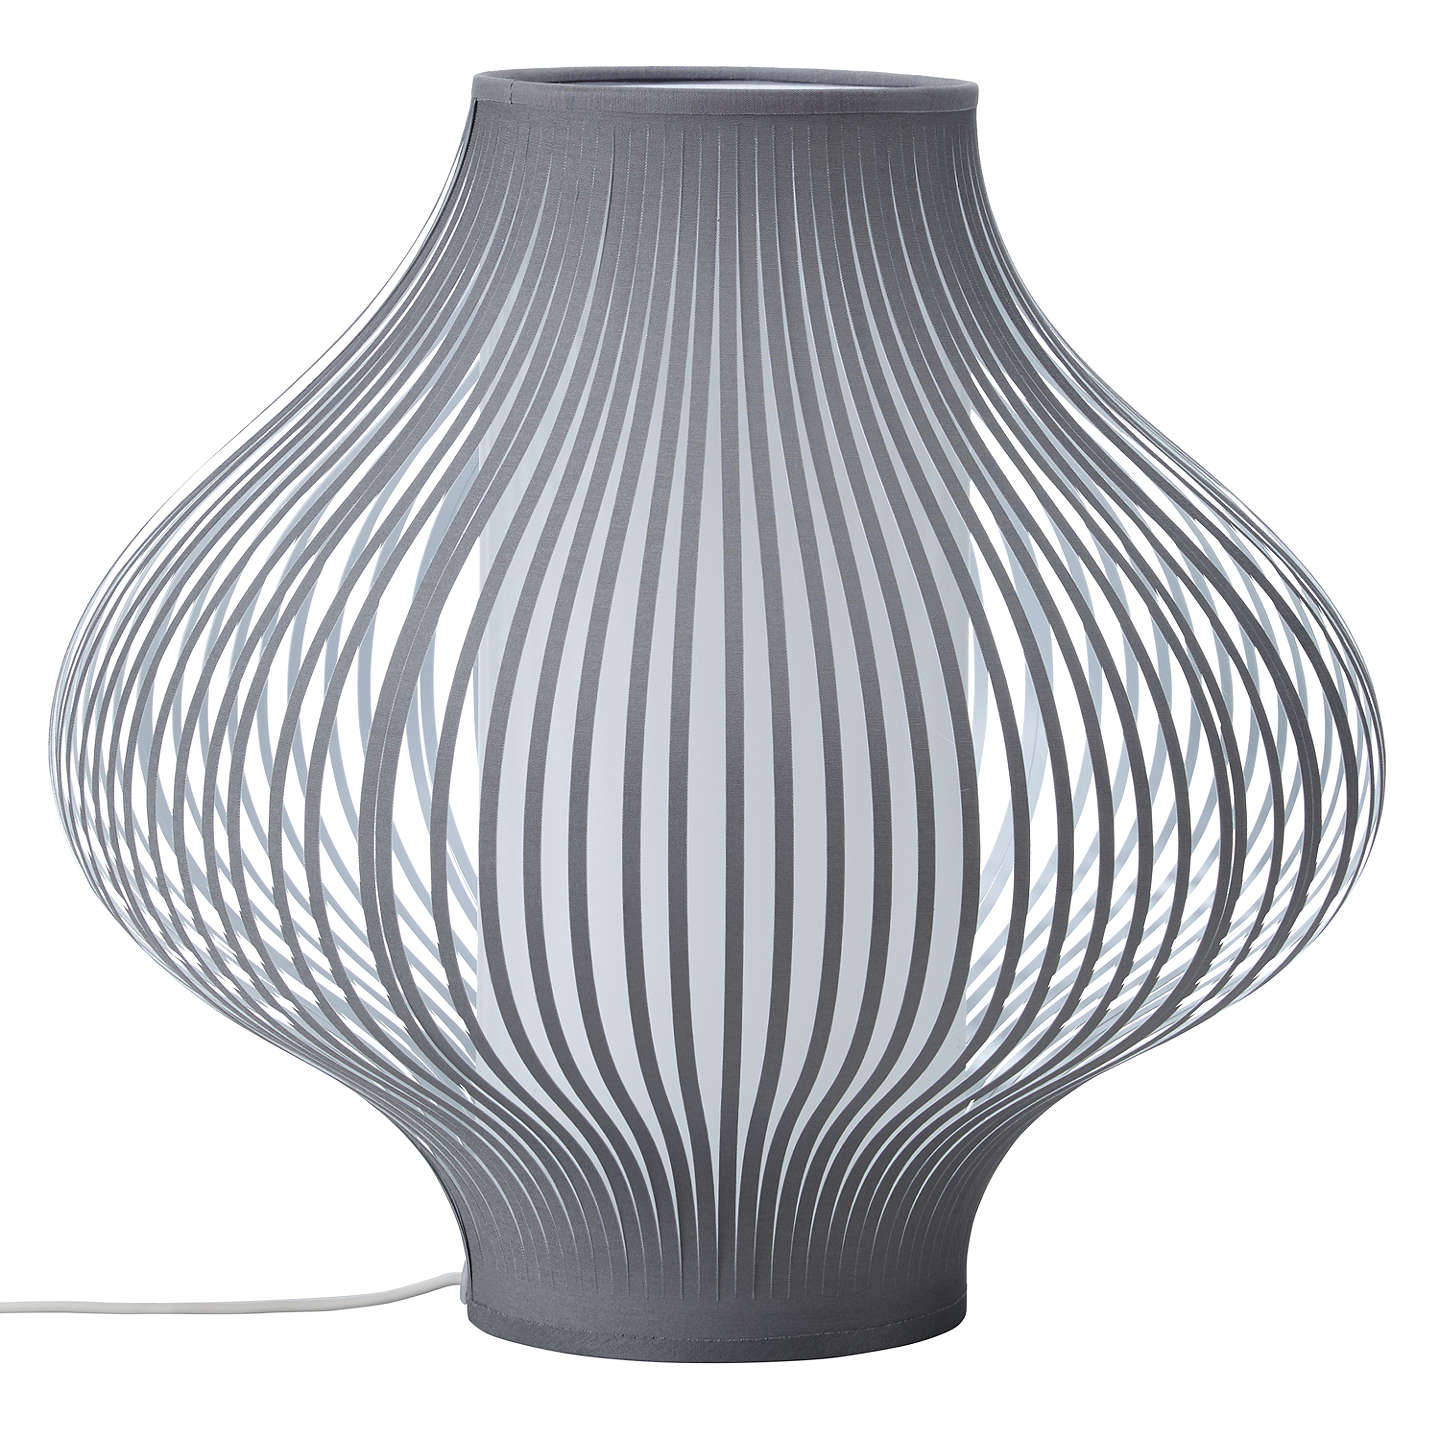 BuyJohn Lewis Harmony Ribbon Table Lamp, Grey, Small Online at johnlewis.com